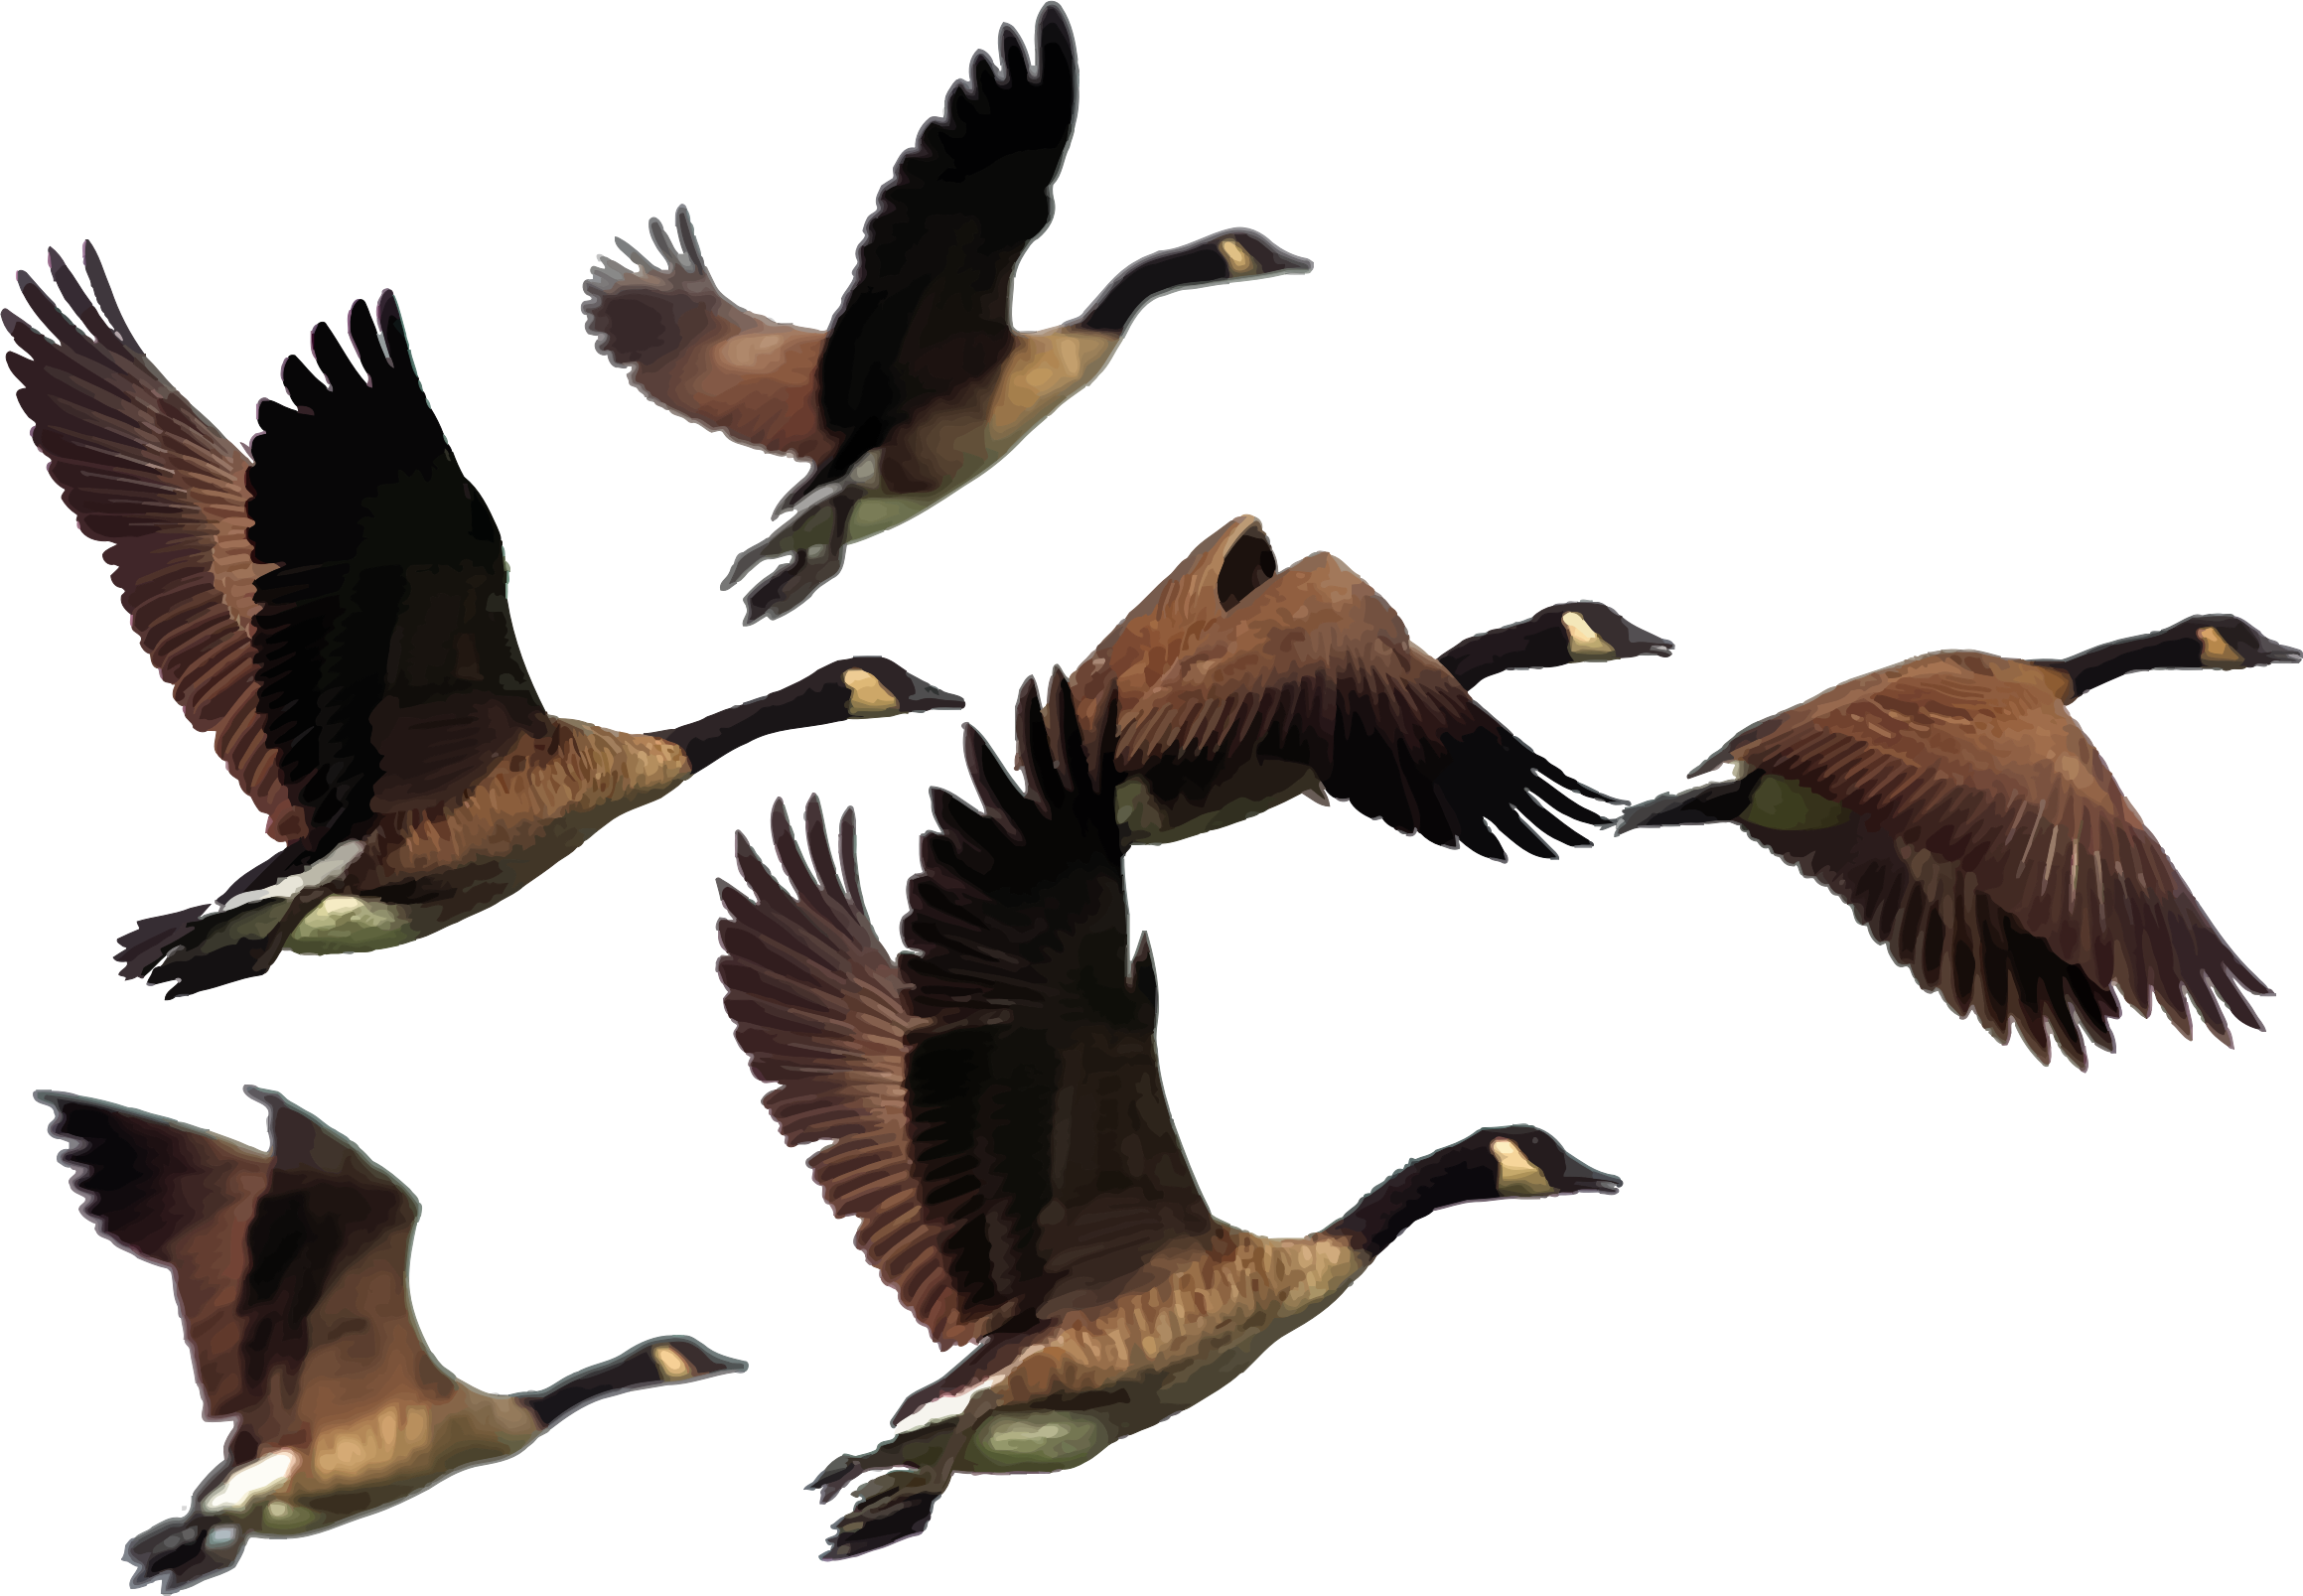 Goose transparent colorful. Gaggle of geese icons